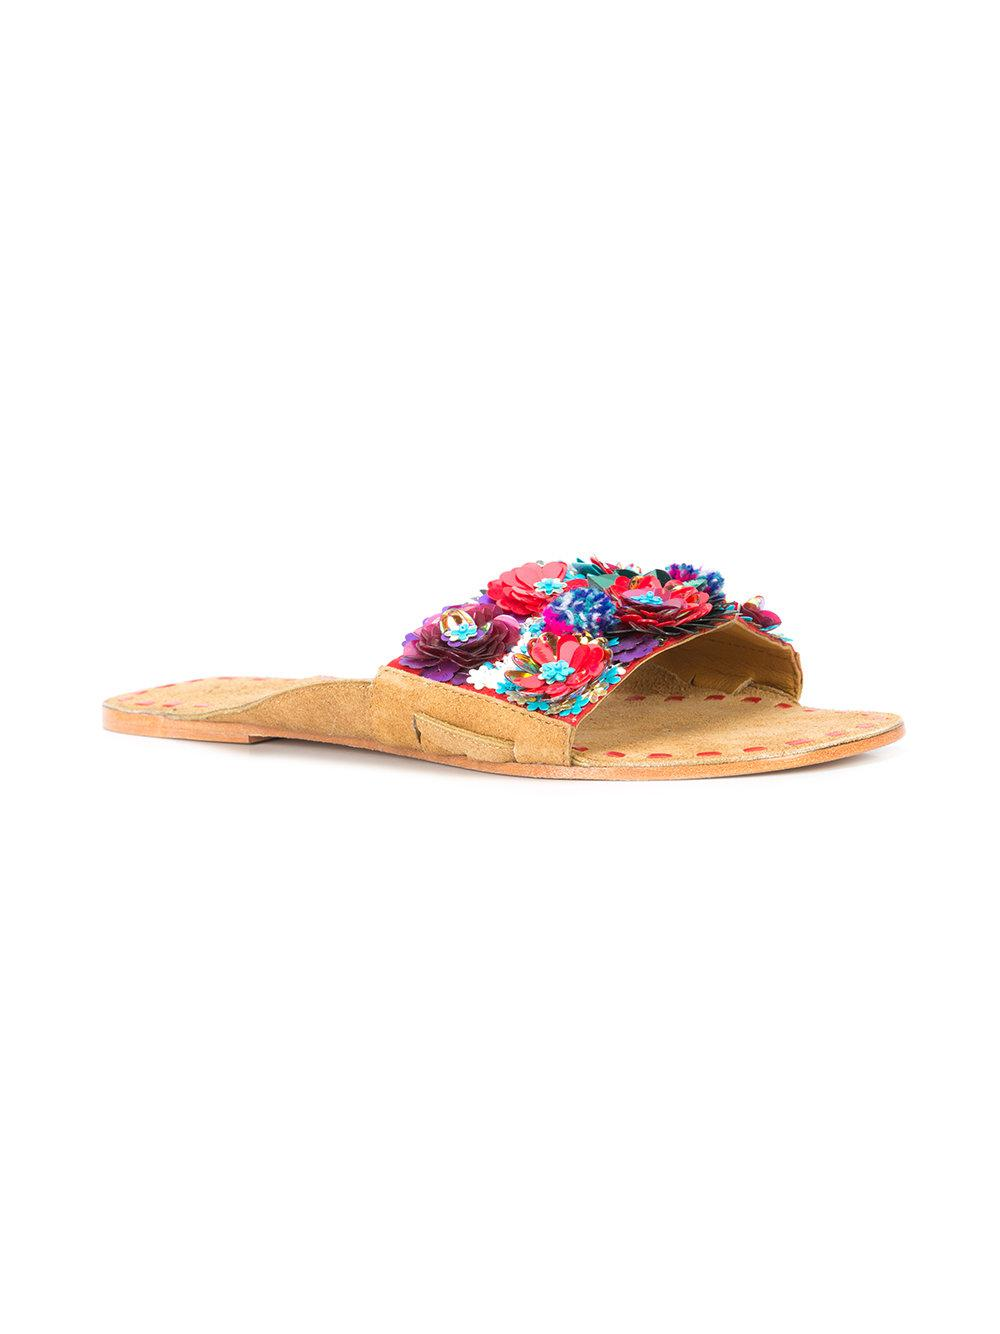 Figue floral embellished slide sandals low price cheap price free shipping factory outlet rfSOagWCg